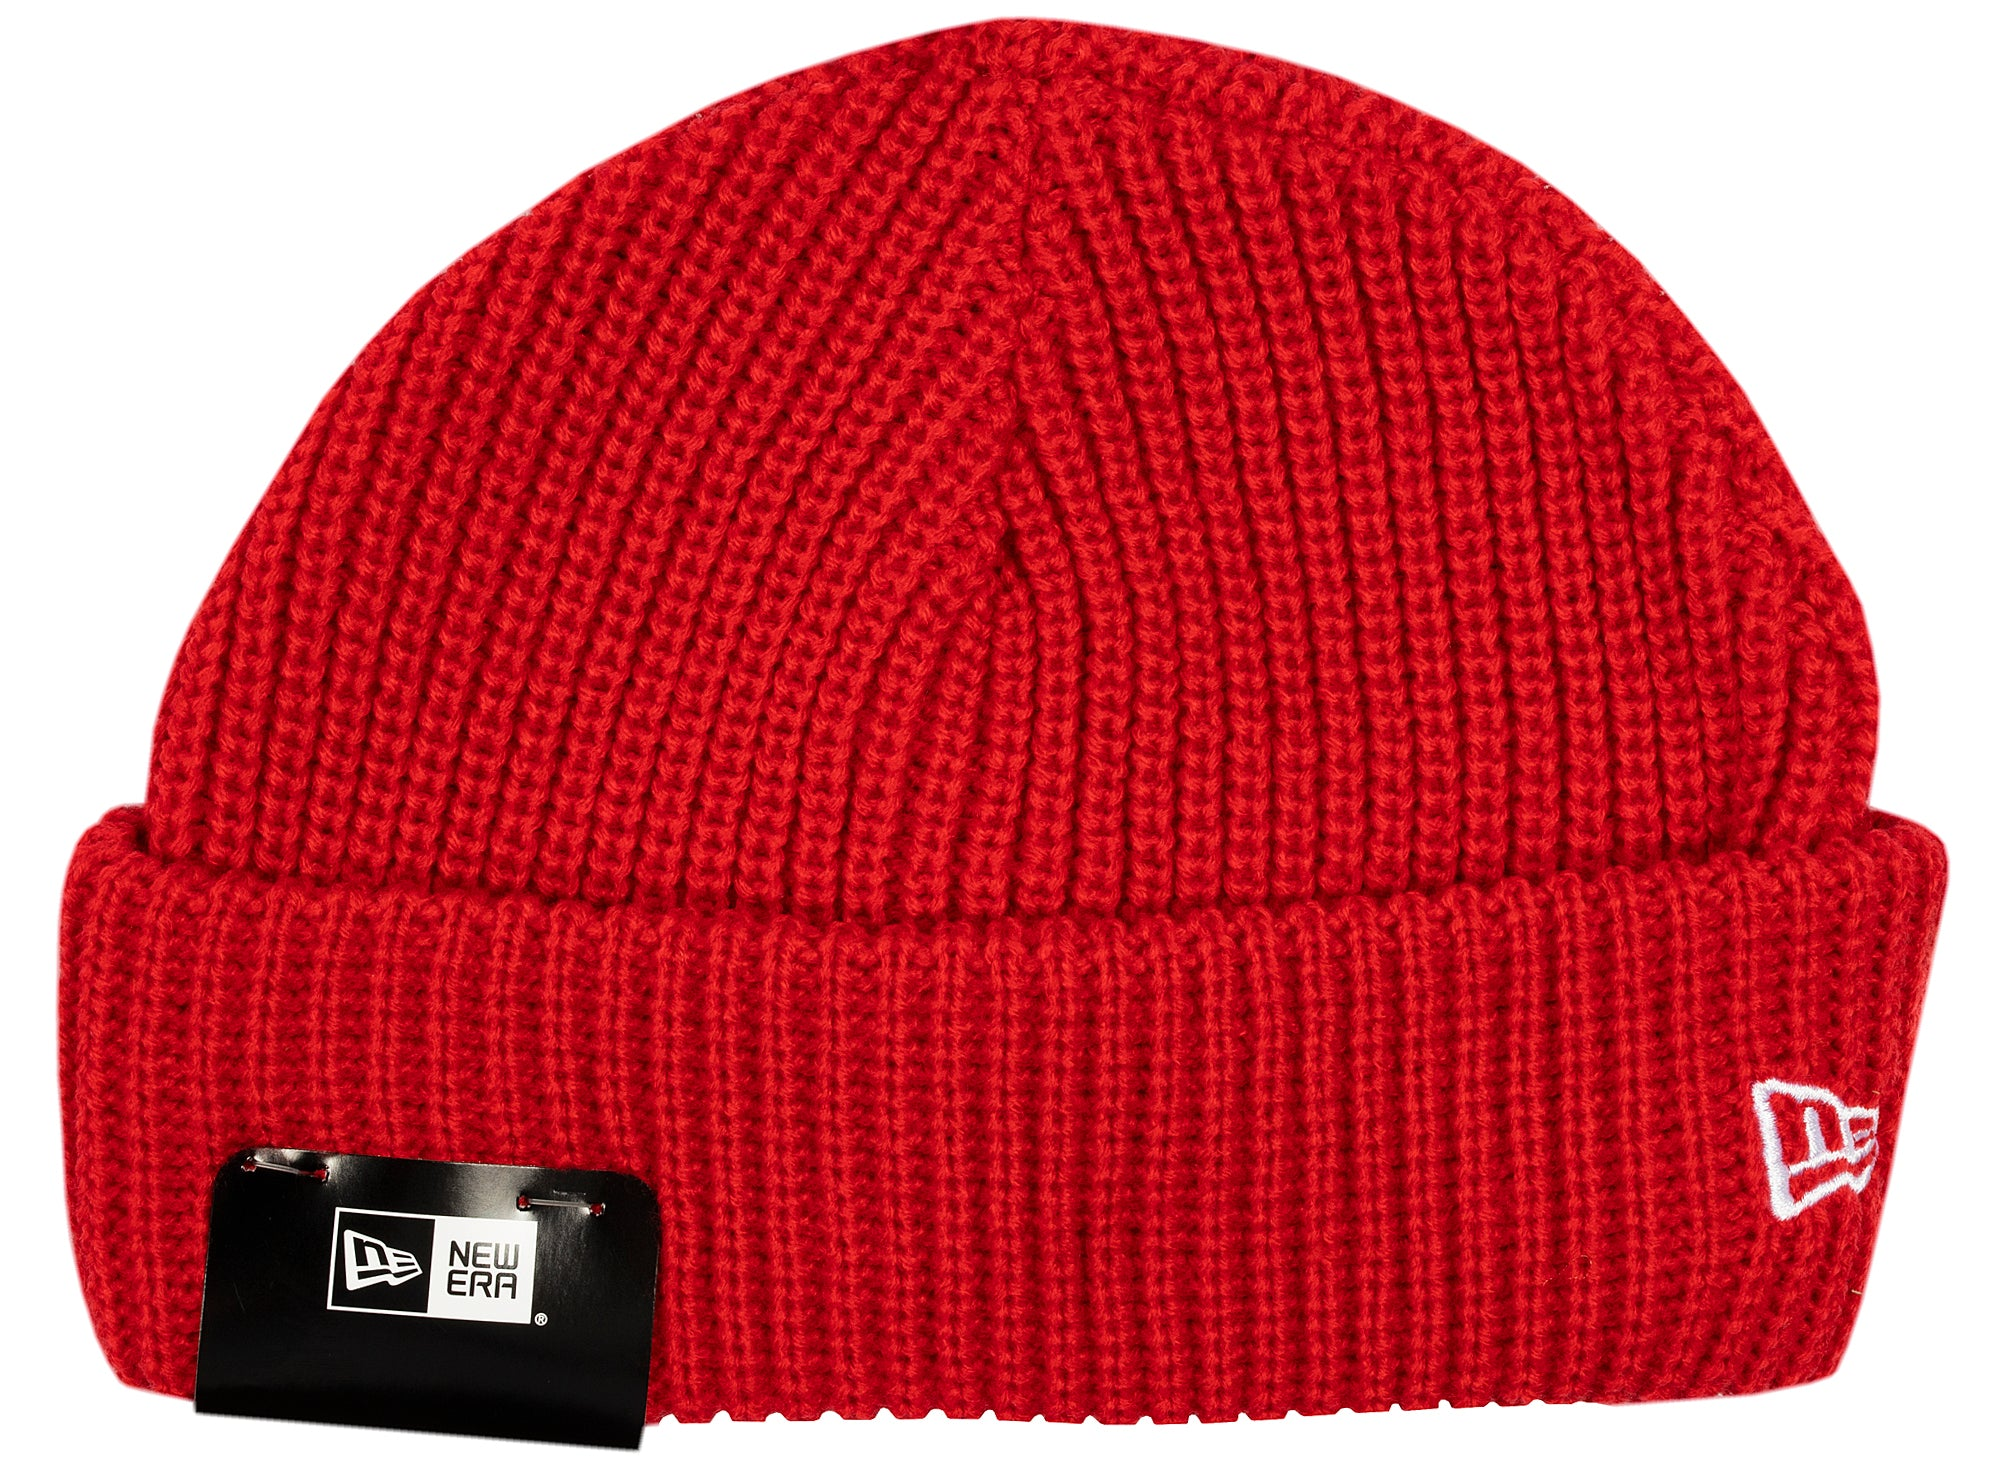 New Era Knit Skully Cap in Red